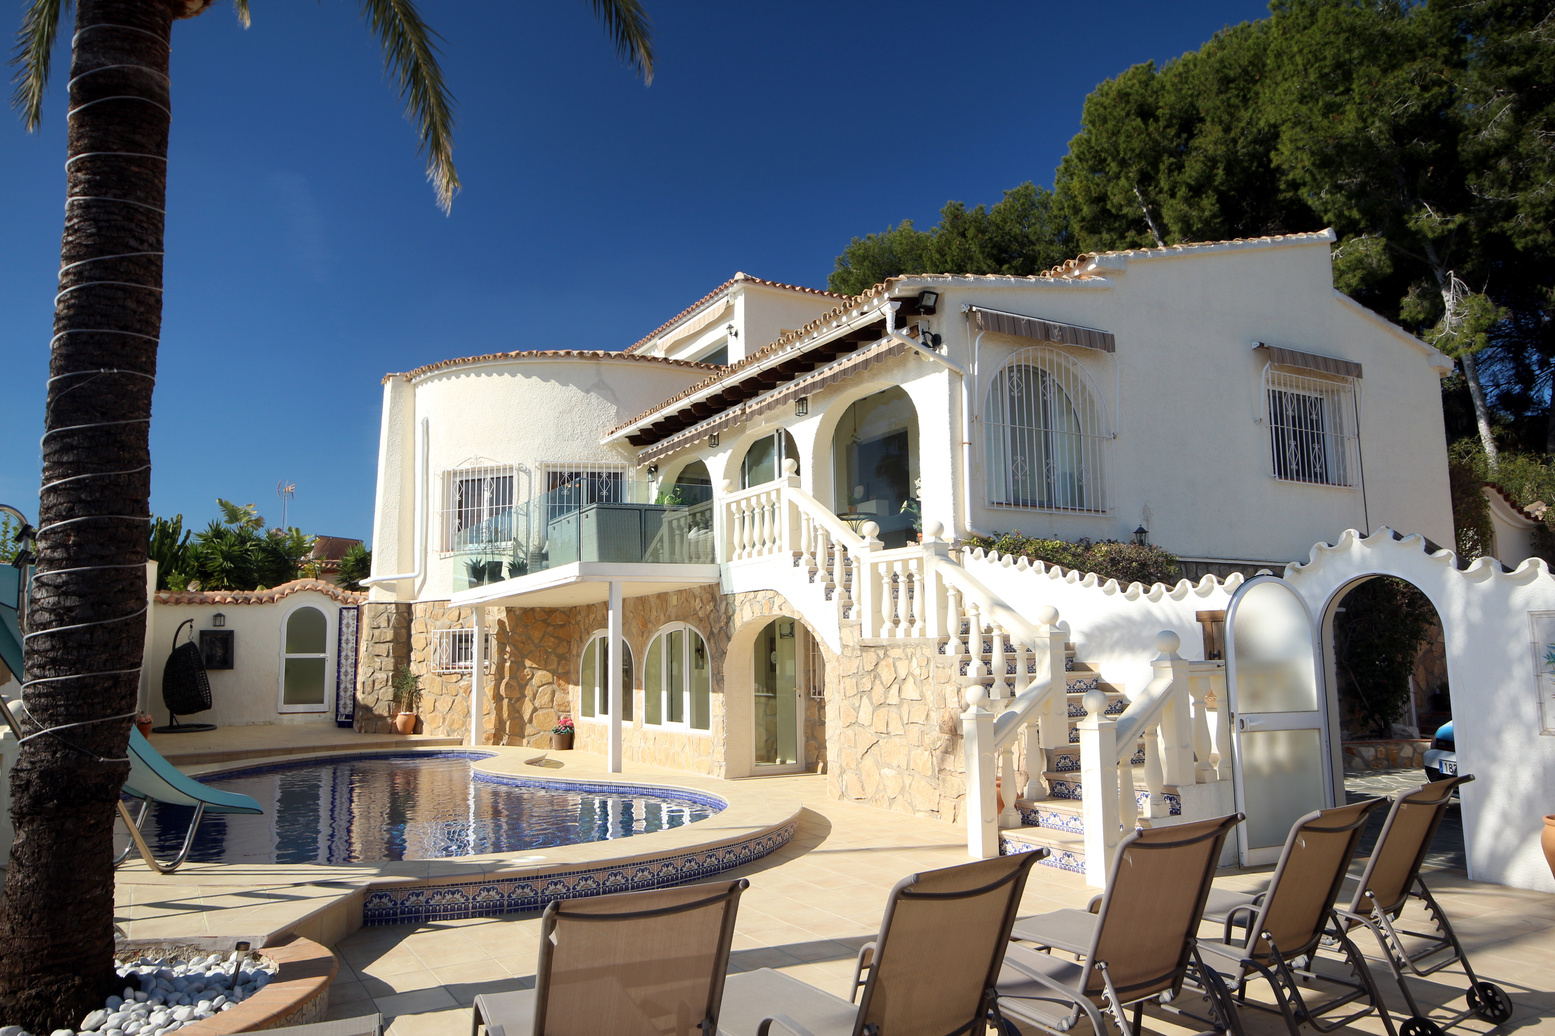 5 Bedroom Villa in Moraira